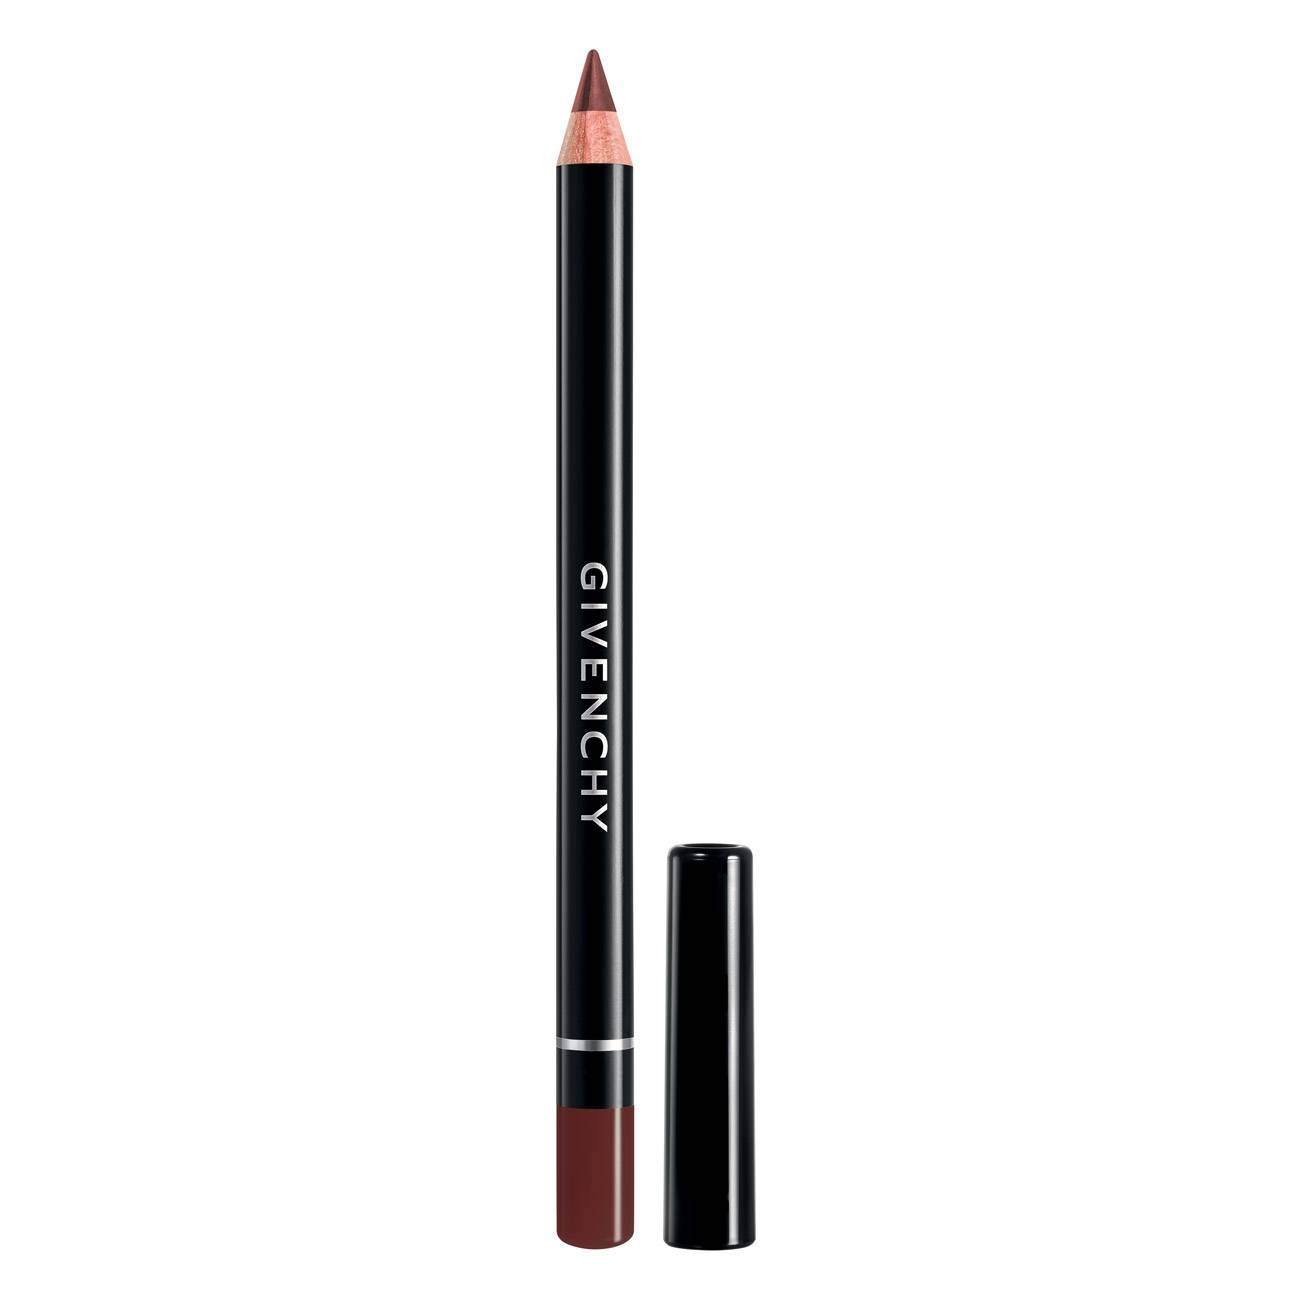 Lip Liner 1 G Pliligive1247450 Givenchy imagine 2021 bestvalue.eu